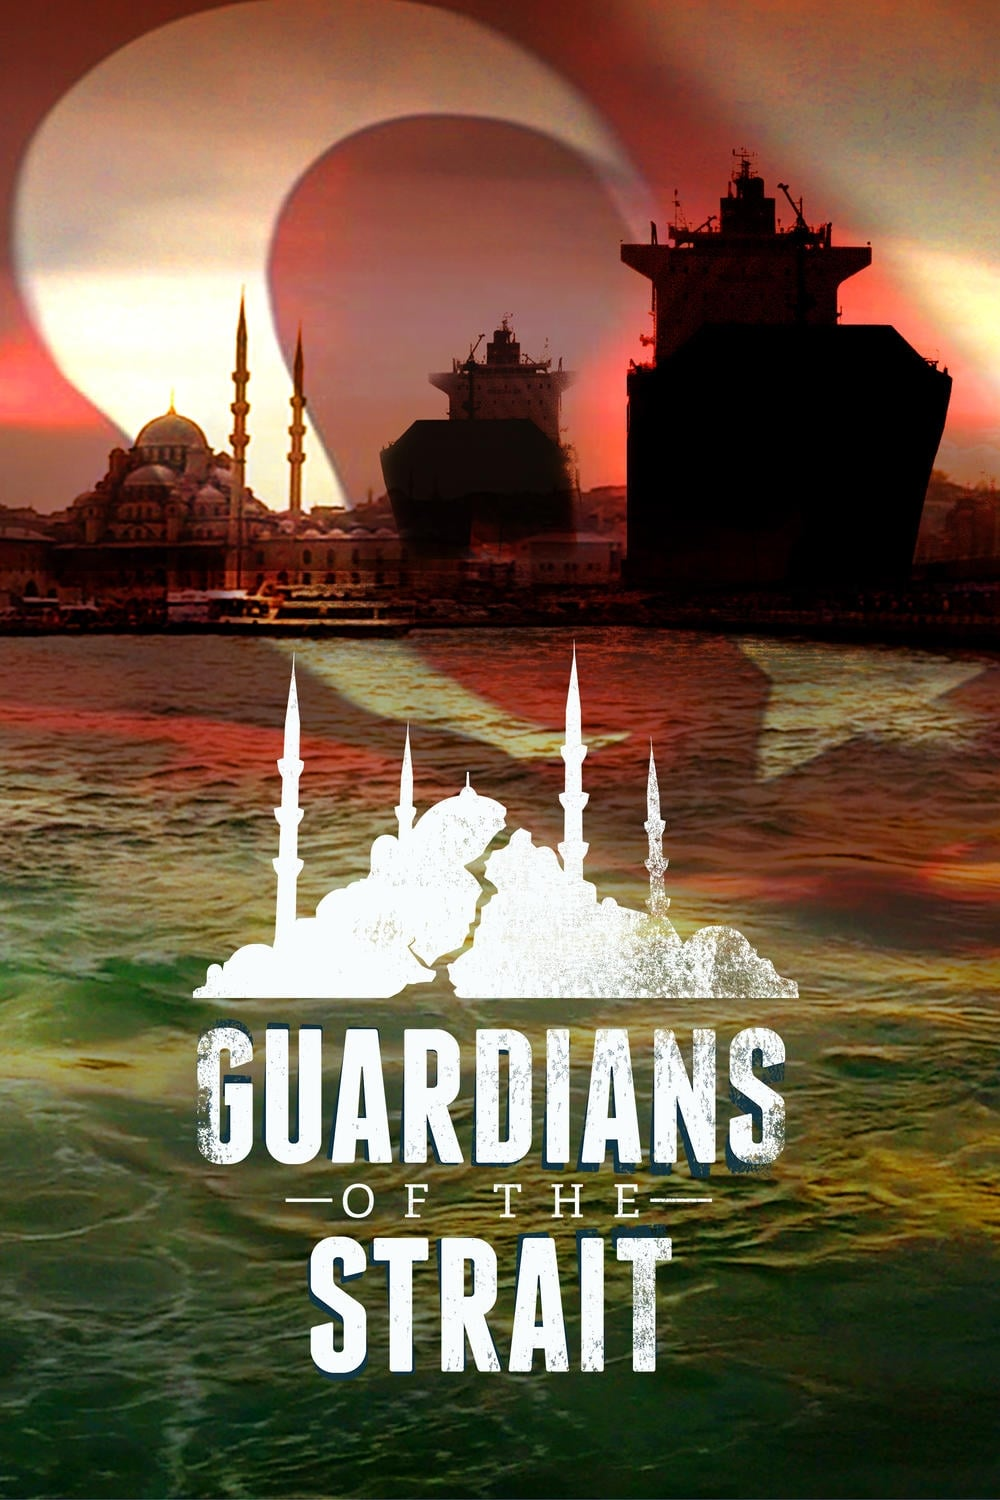 Guardians of the Strait (2017)